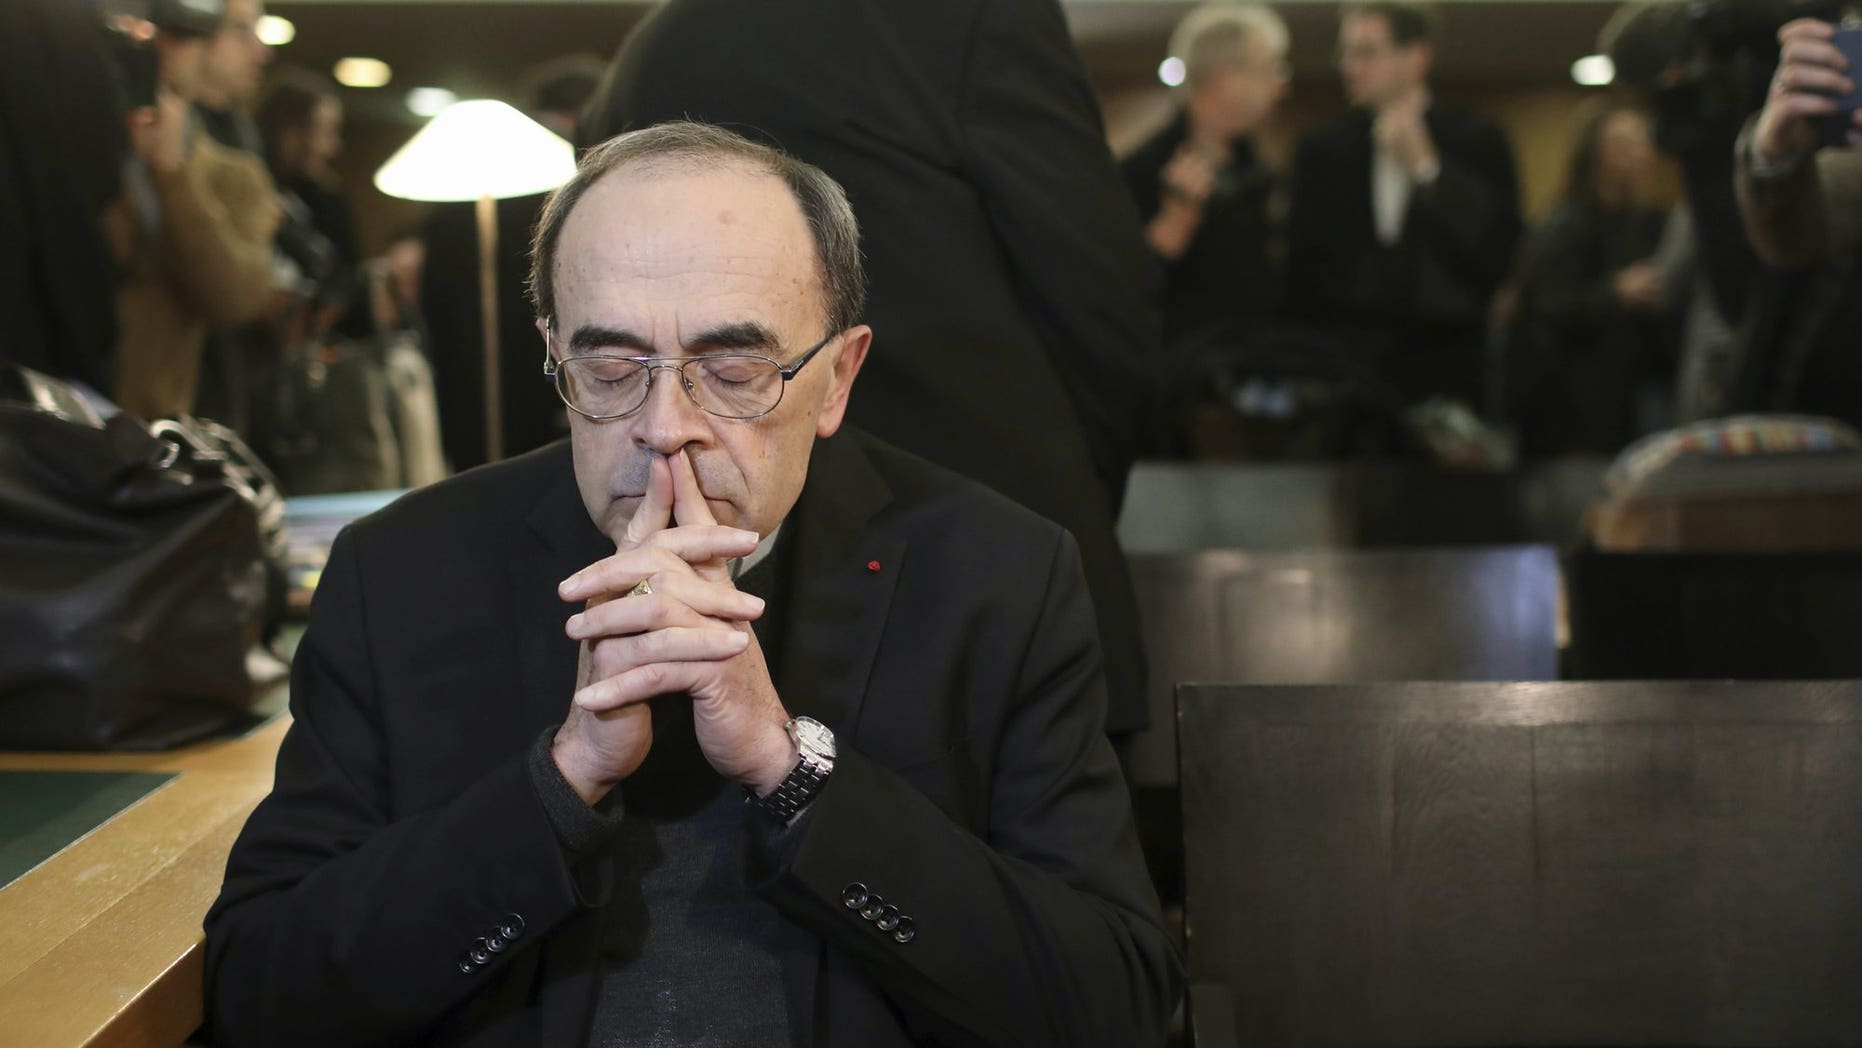 In this Jan. 7, 2019 file photo, French Cardinal Philippe Barbarin waits for the start of his trial at the Lyon courthouse, central France. A French court has found top Catholic official Cardinal Philippe Barbarin guilty for failing to report to justice accusations against a pedophile priest. In a surprise decision Thursday, March 7, 2019 in France's most important church sex abuse trial, the Lyon court handed Barbarin a six-month suspended prison sentence for not reporting the facts in the period between July 2014 and June 2015.